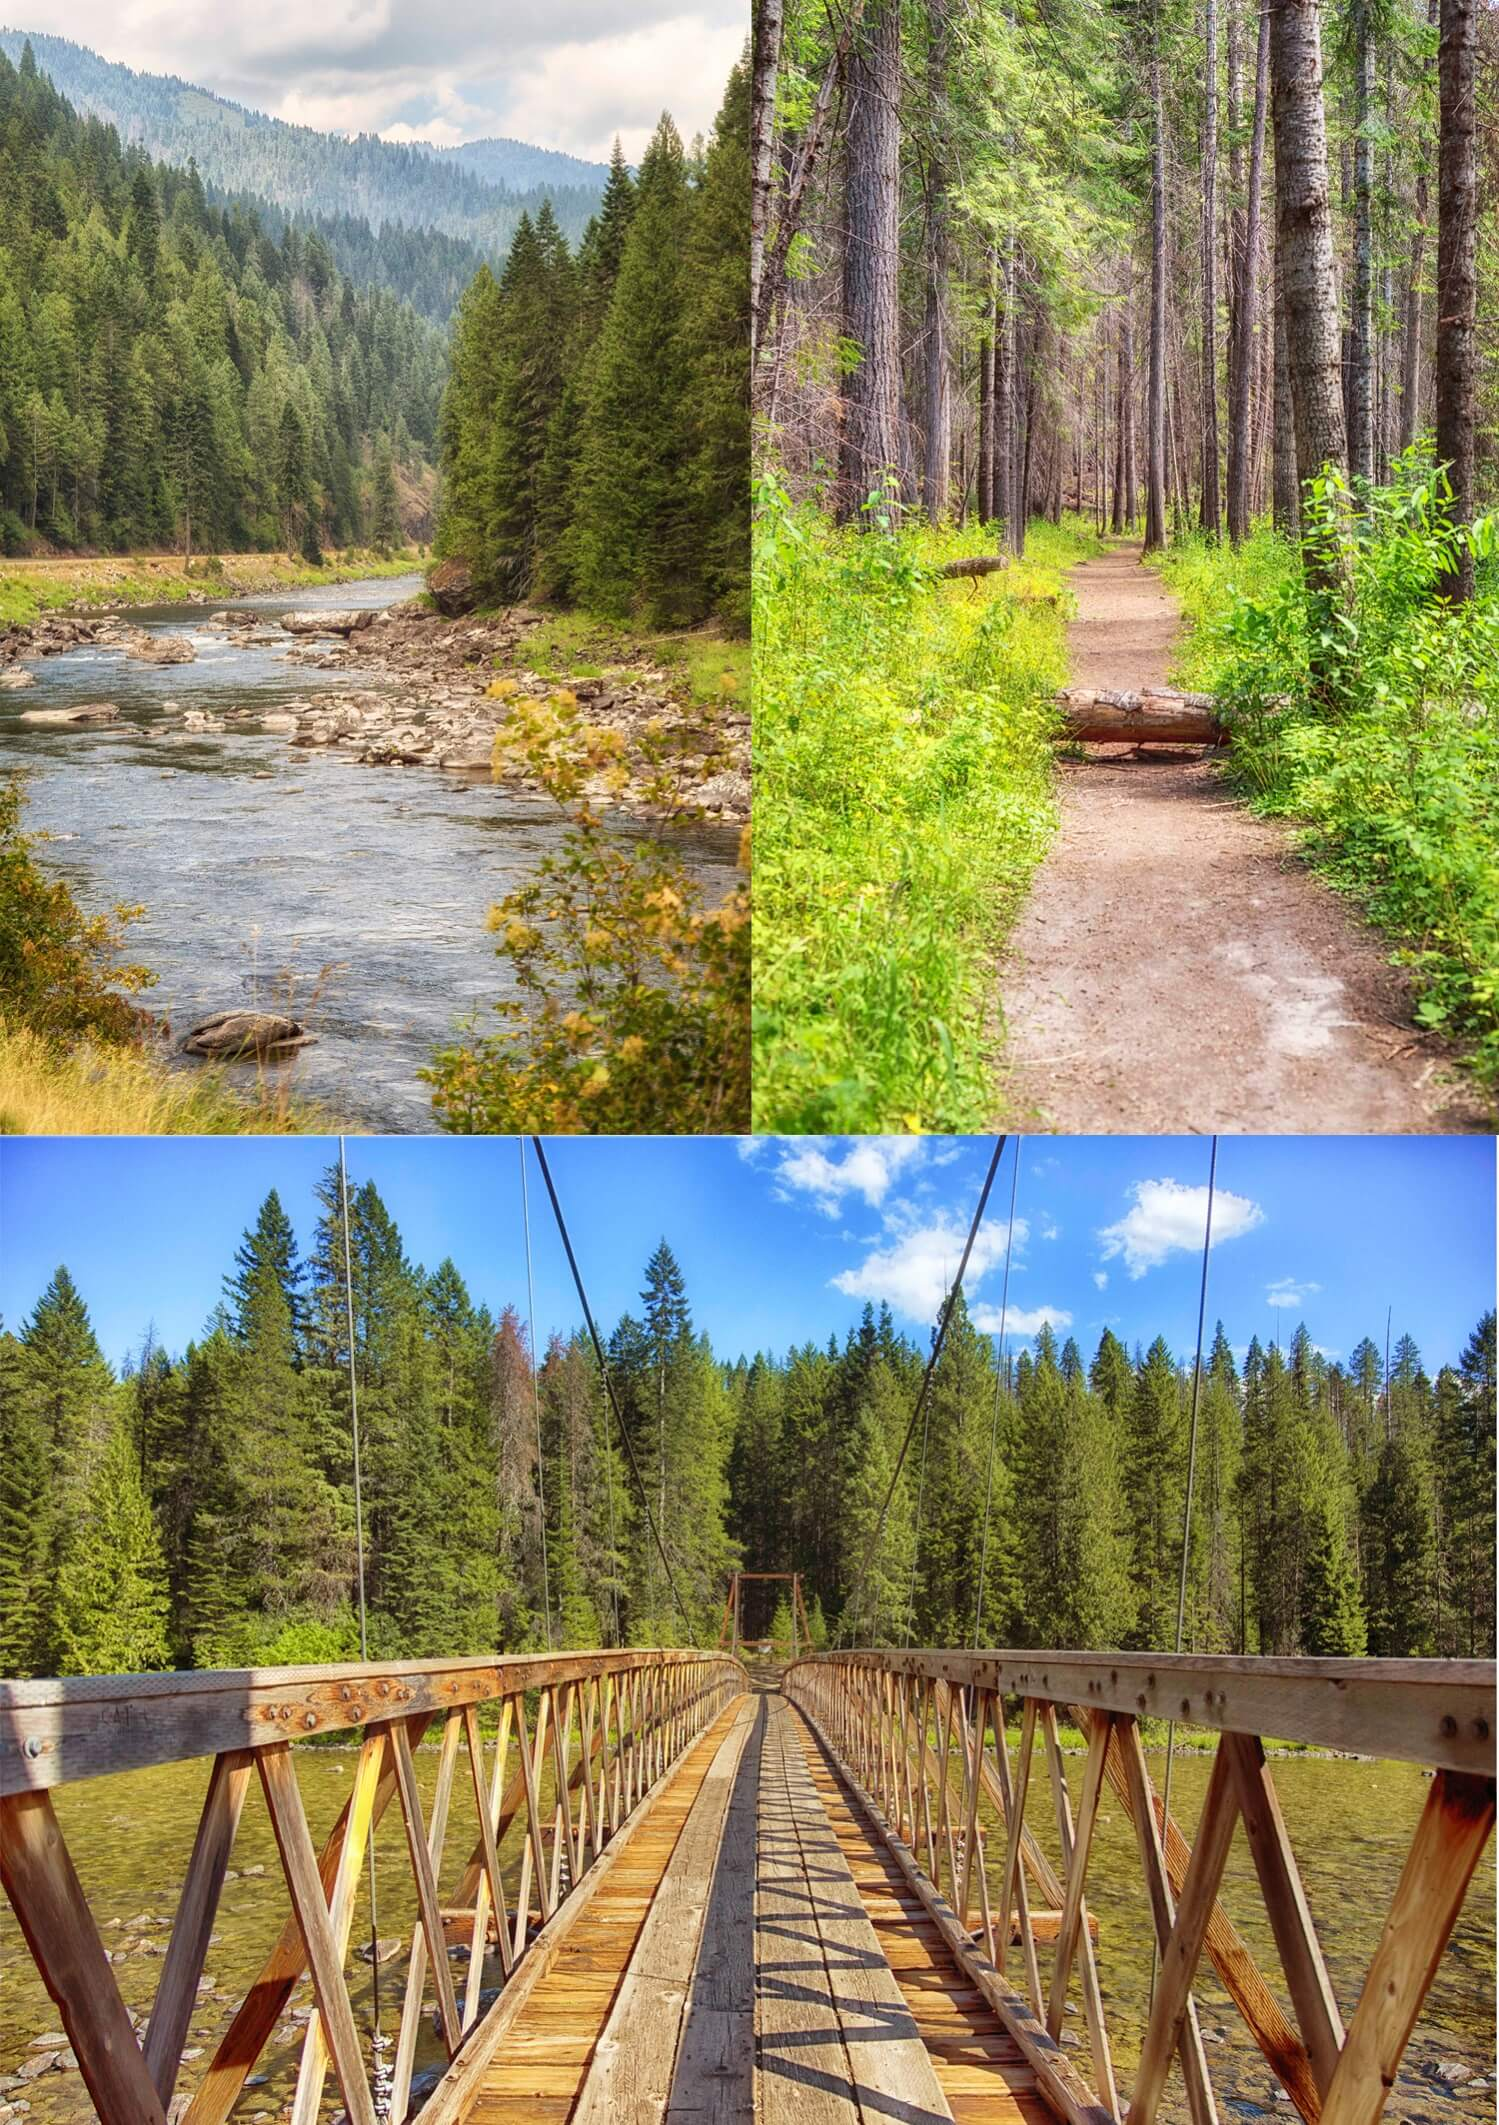 collage: flowing stream, forest path, bridge perspective.